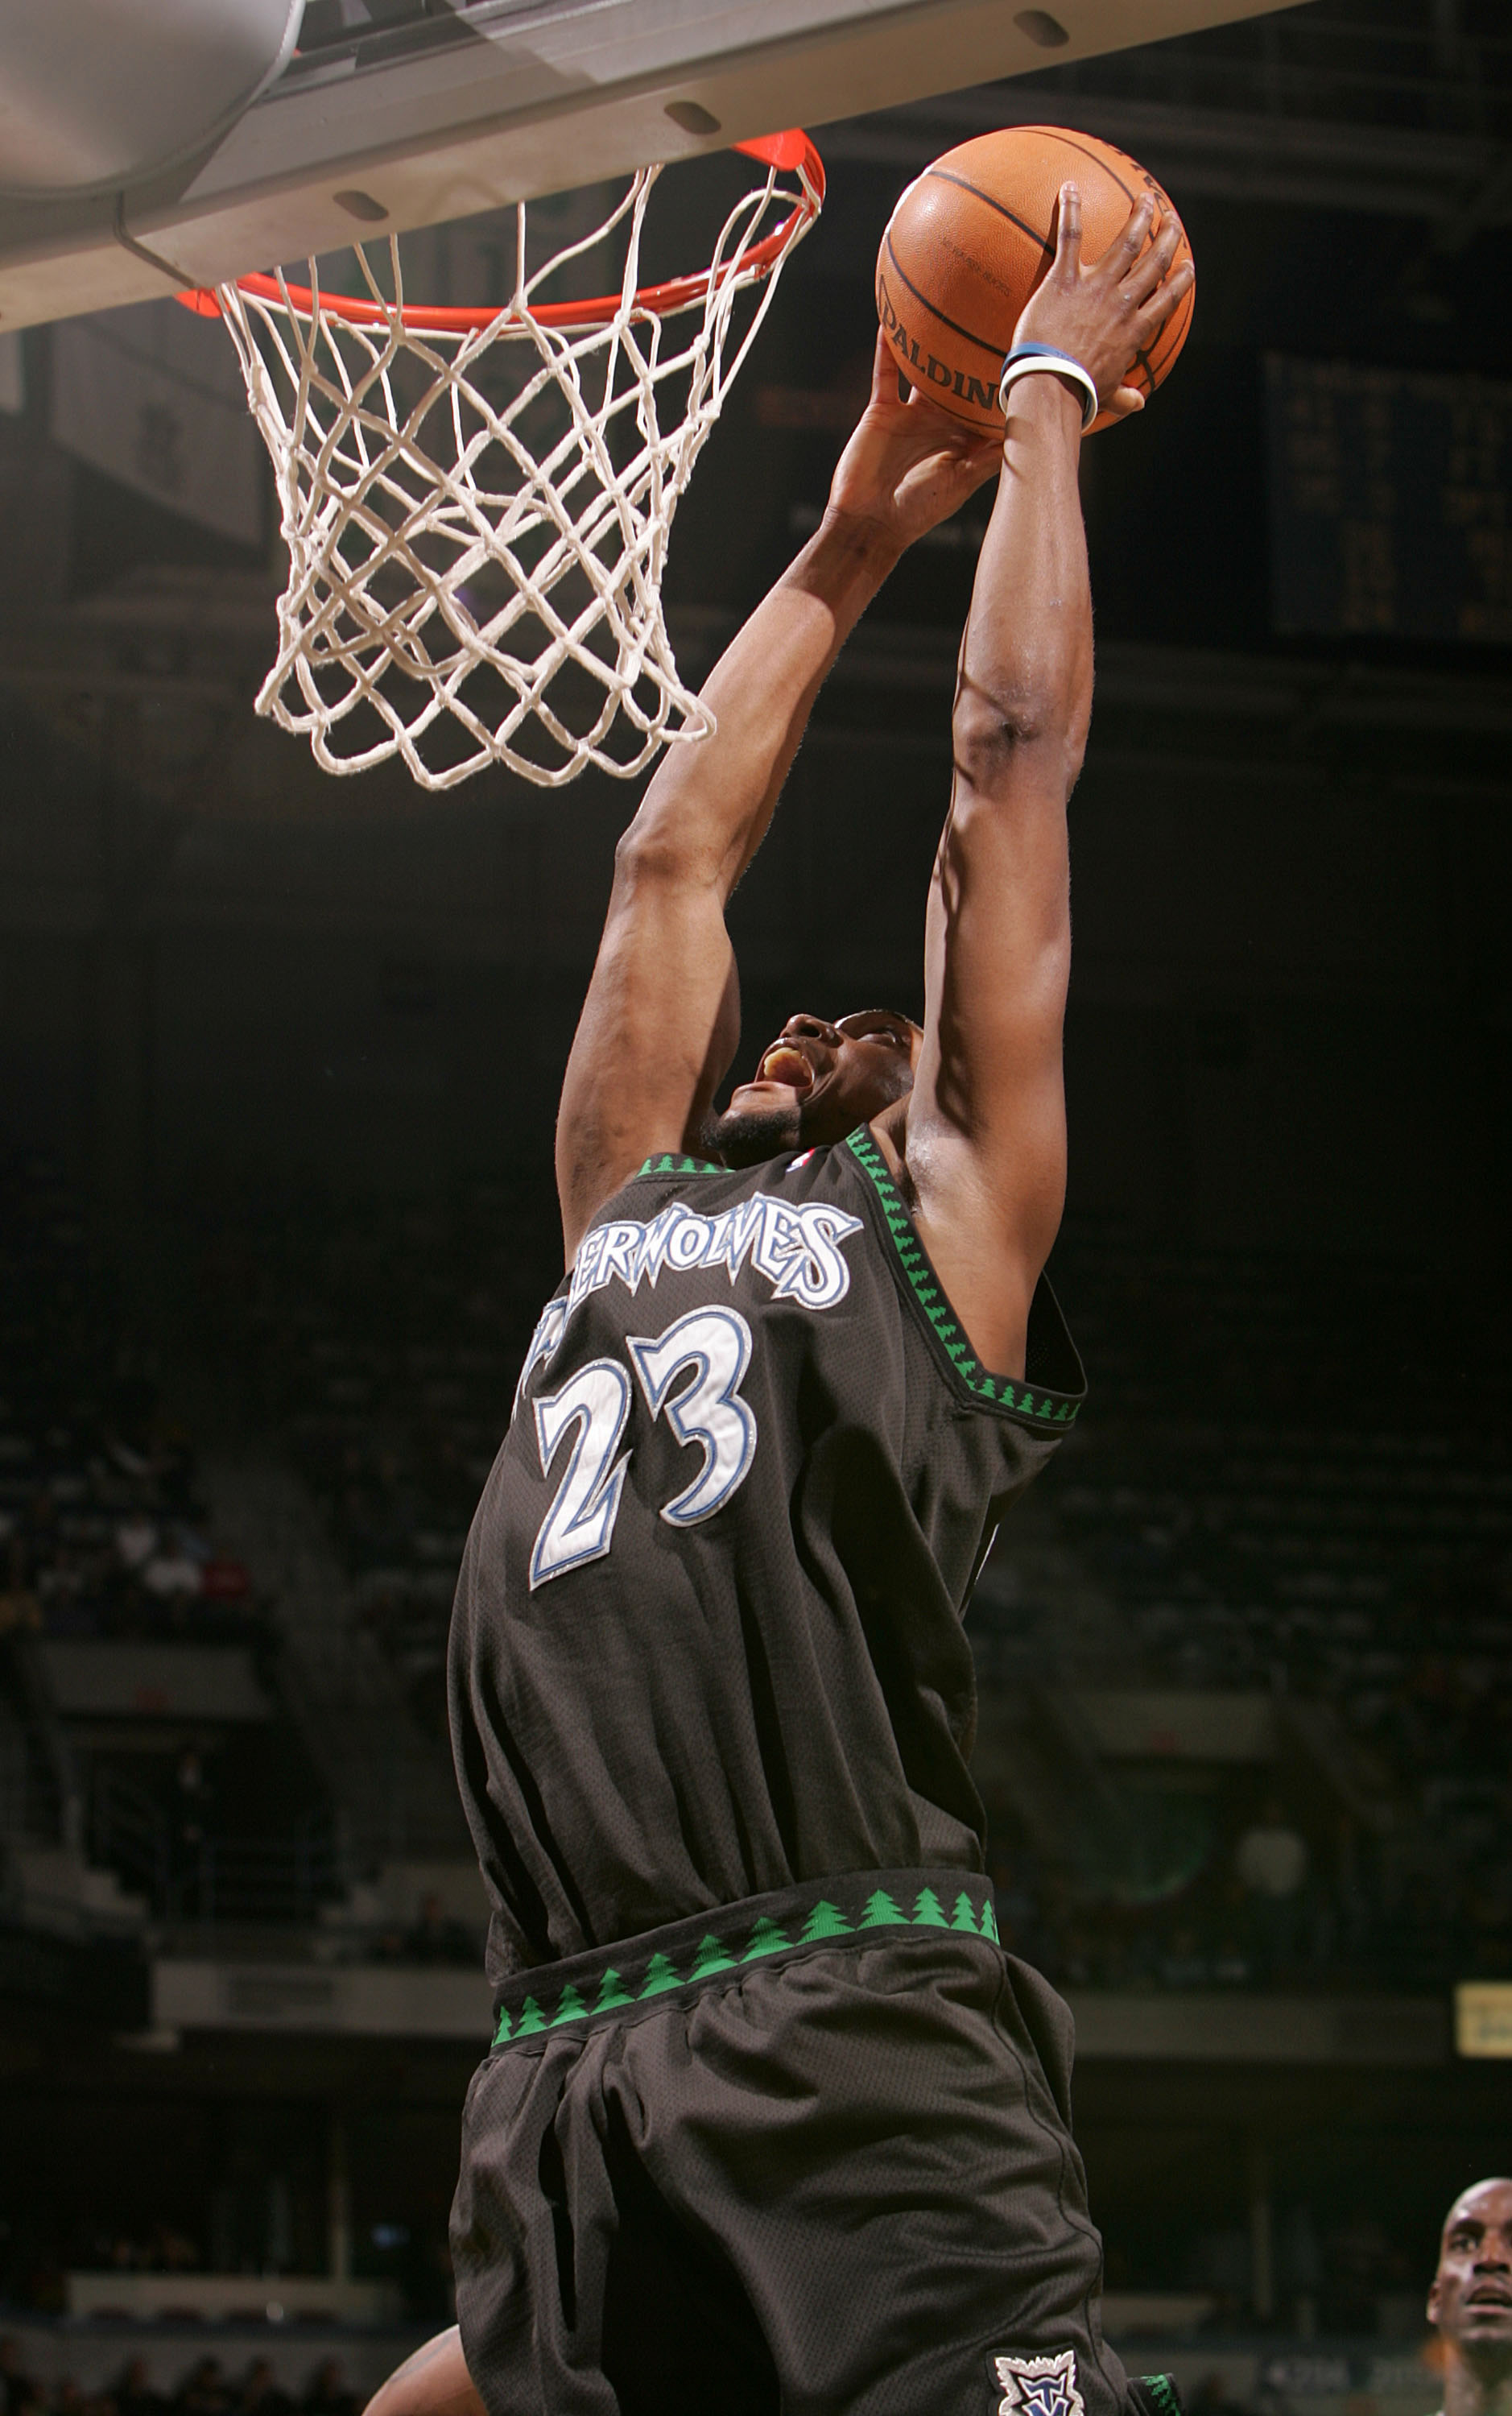 MILWAUKEE, WI - FEBRUARY 1:  Trenton Hassell #23 of the Minnesota Timberwolves slams the ball against the Milwaukee Bucks on February 1, 2005 at Bradley Center in Milwaukee, Wisconsin. The Bucks defeated the Timberwolves 91-86.  NOTE TO USER: User express